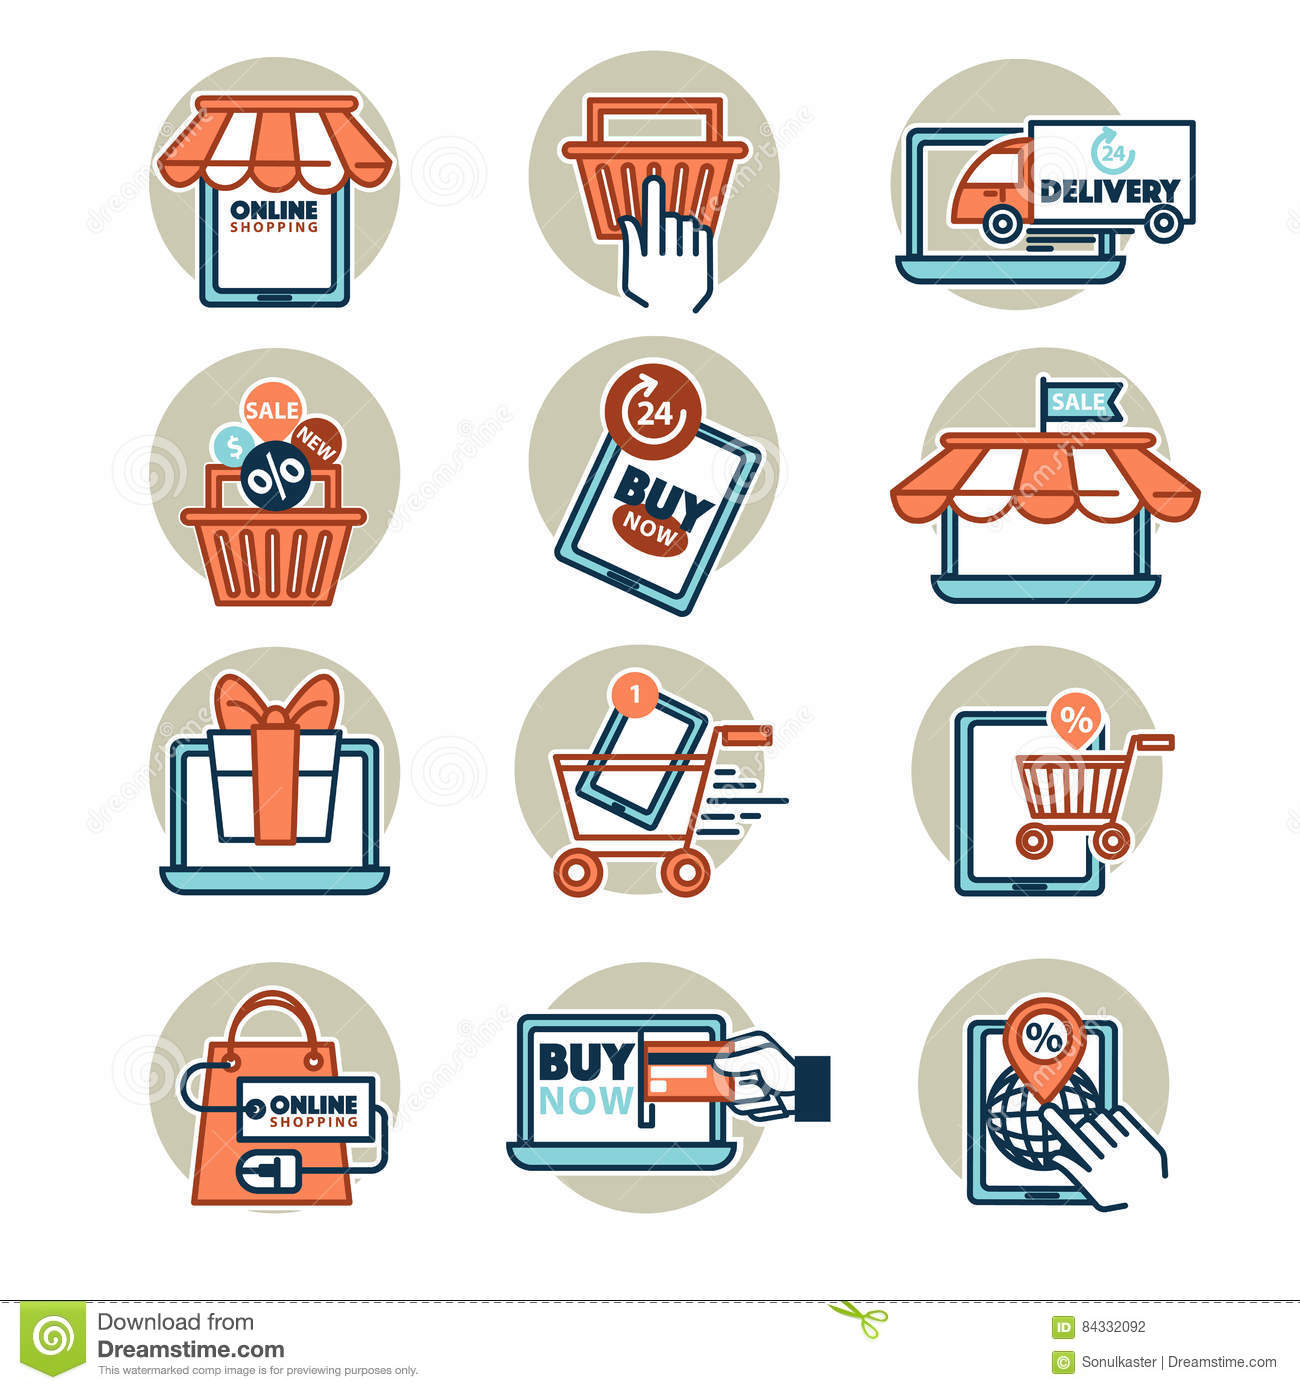 Online Shopping Web Icons Set Stock Vector Illustration Of Mobile